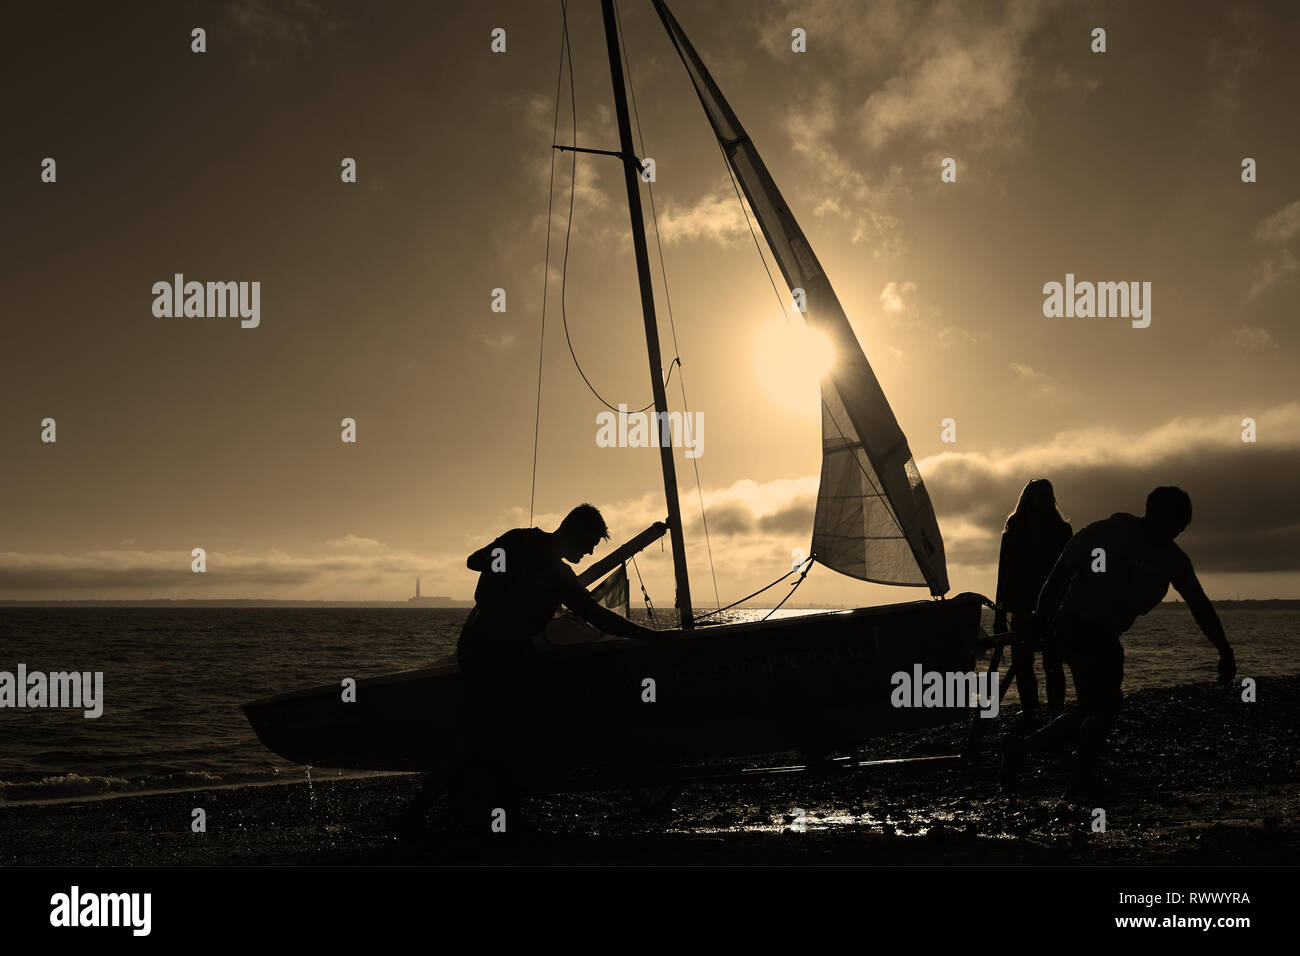 Monochrome silhouette of dinghy boat recovery approaching sunset. A magical scene. Stock Photo